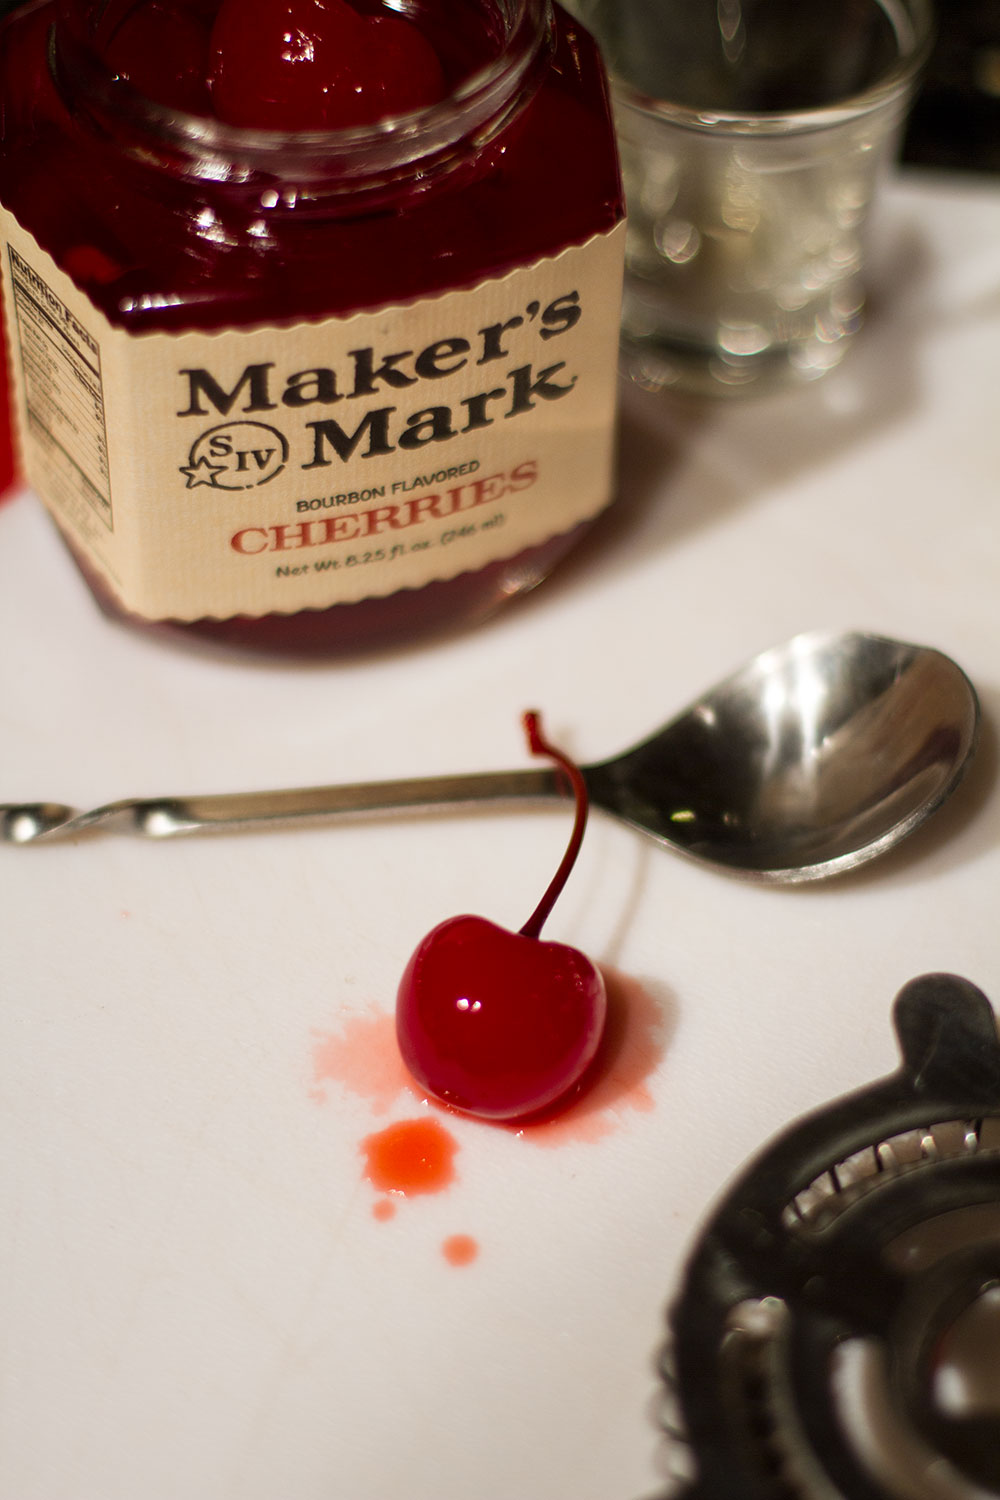 Manhattan Cocktail Recipe, makers mark cherries